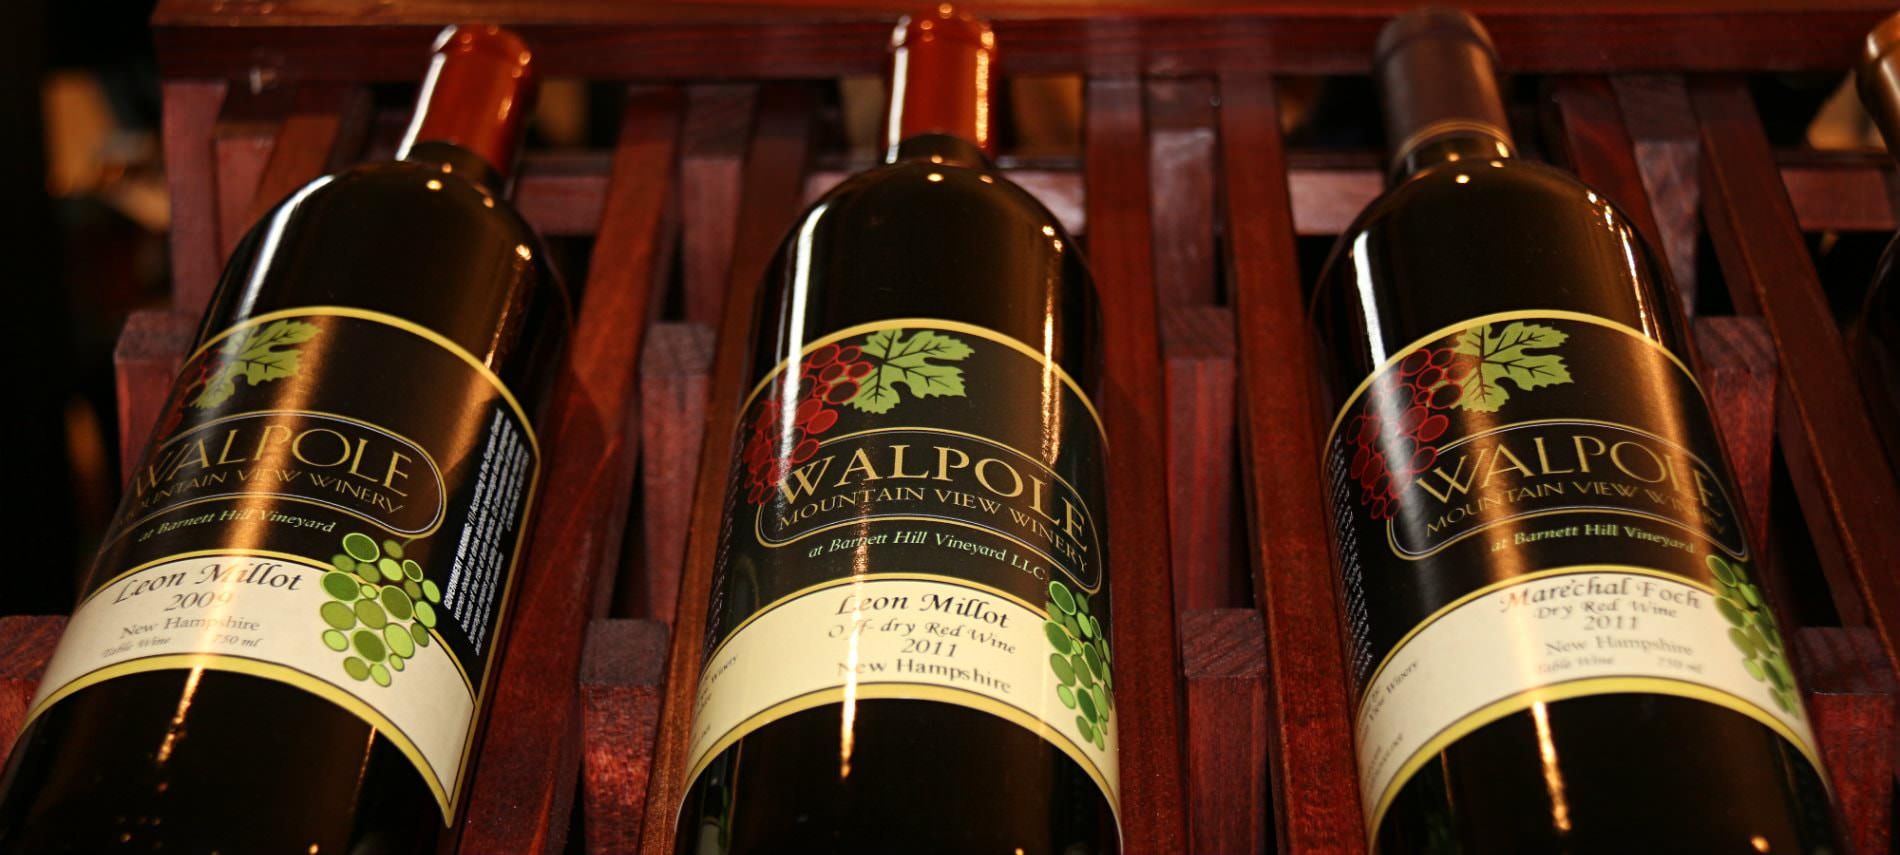 Three bottles of Walpole red wine